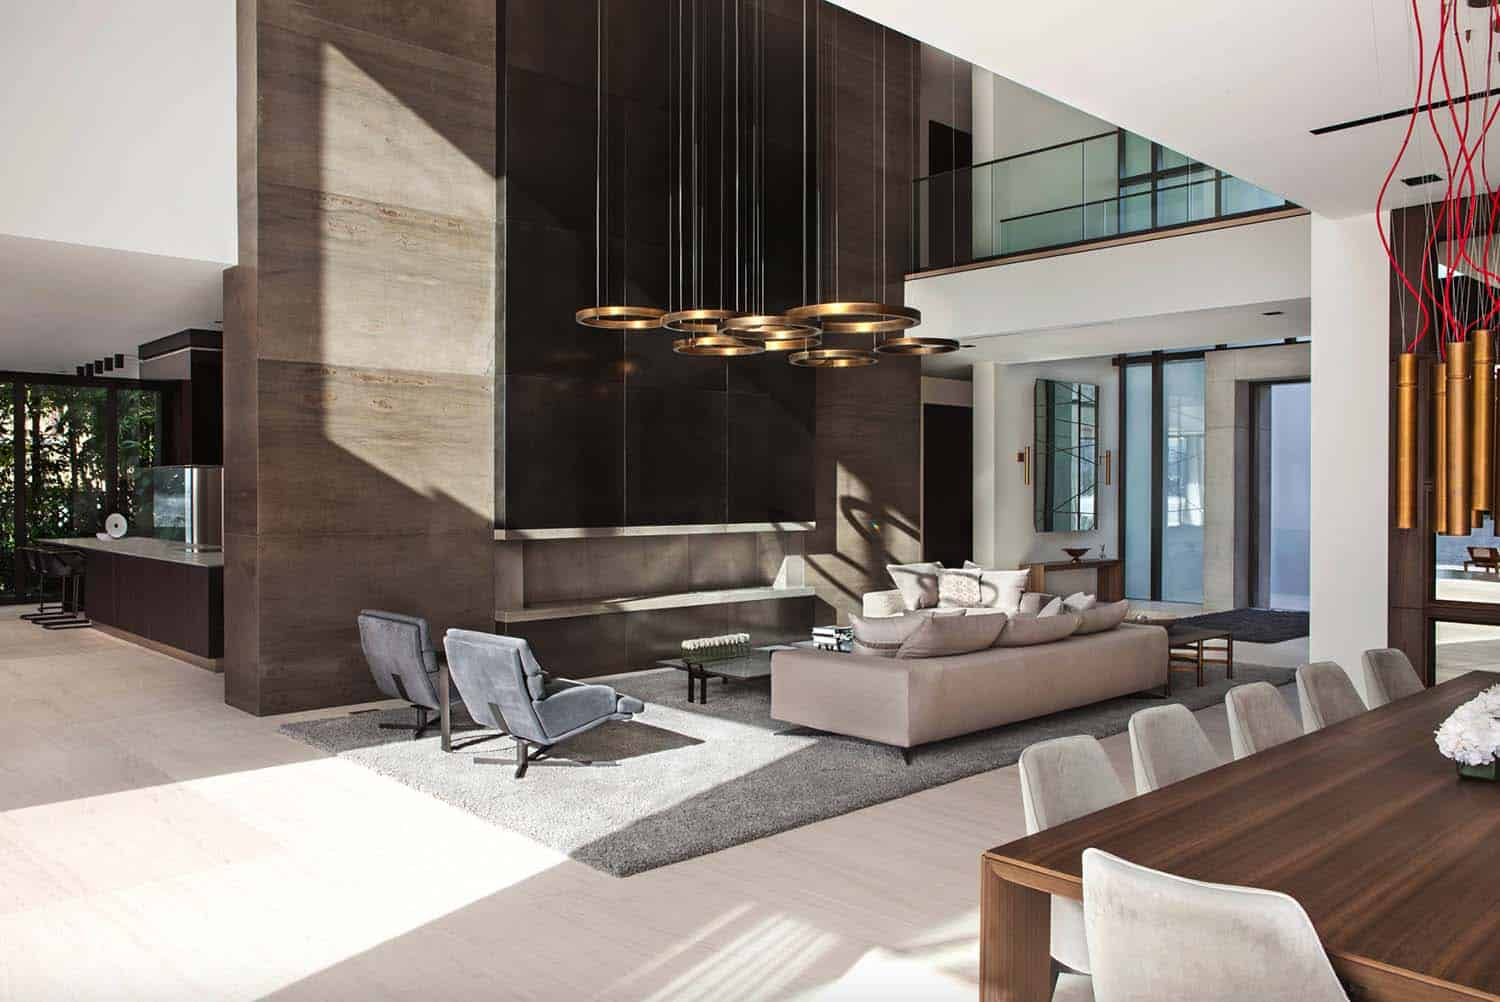 Contemporary Luxury Residence-CLF Architects-11-1 Kindesign